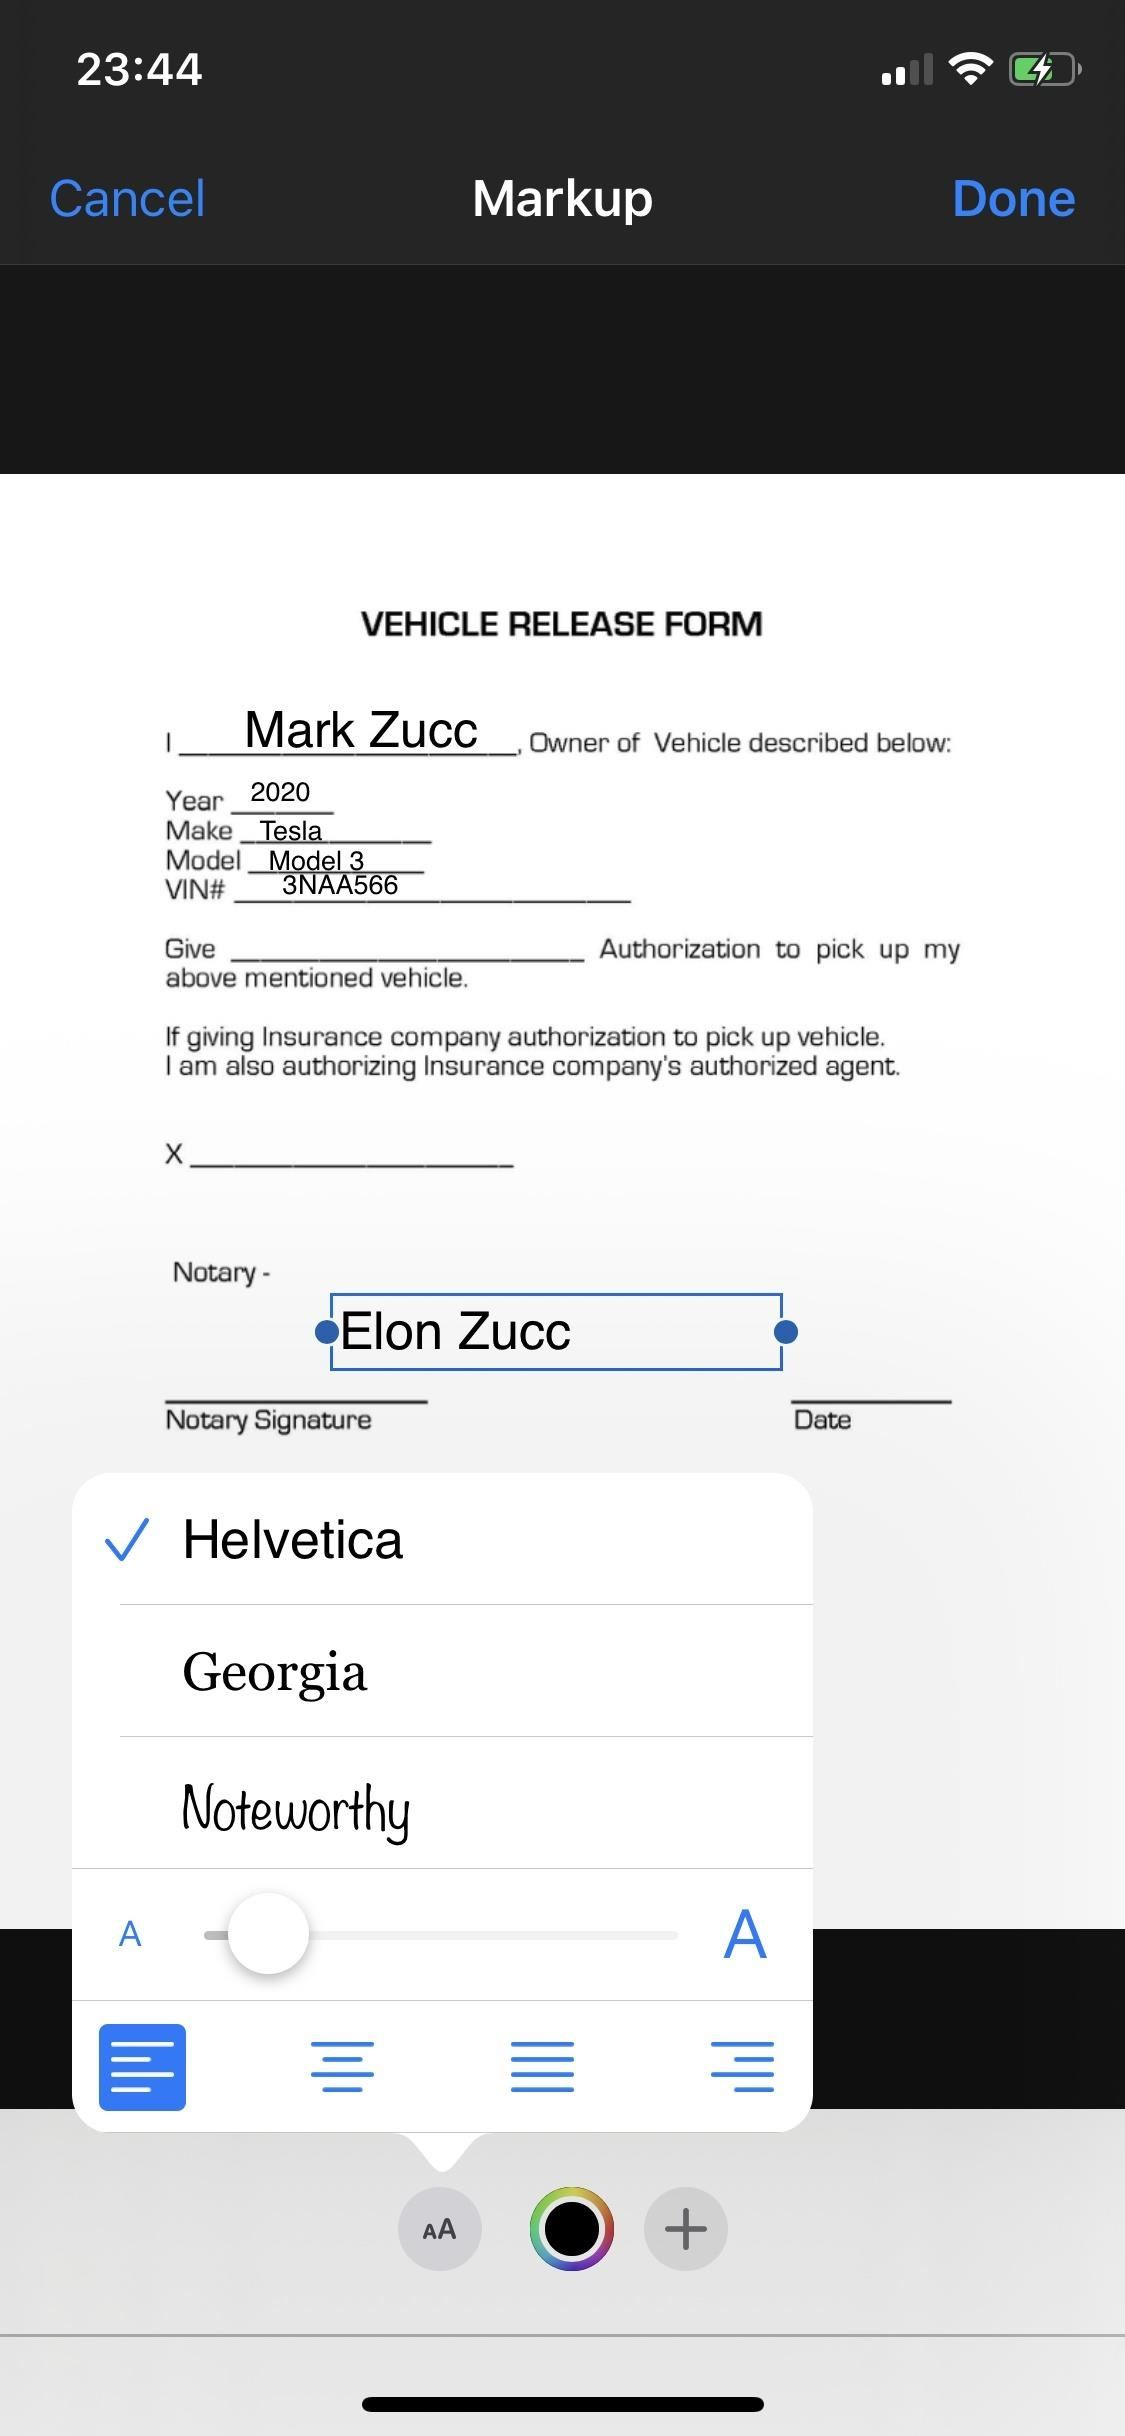 The best ways to electronically fill in documents is to fill out and sign documents on iPhone or Android